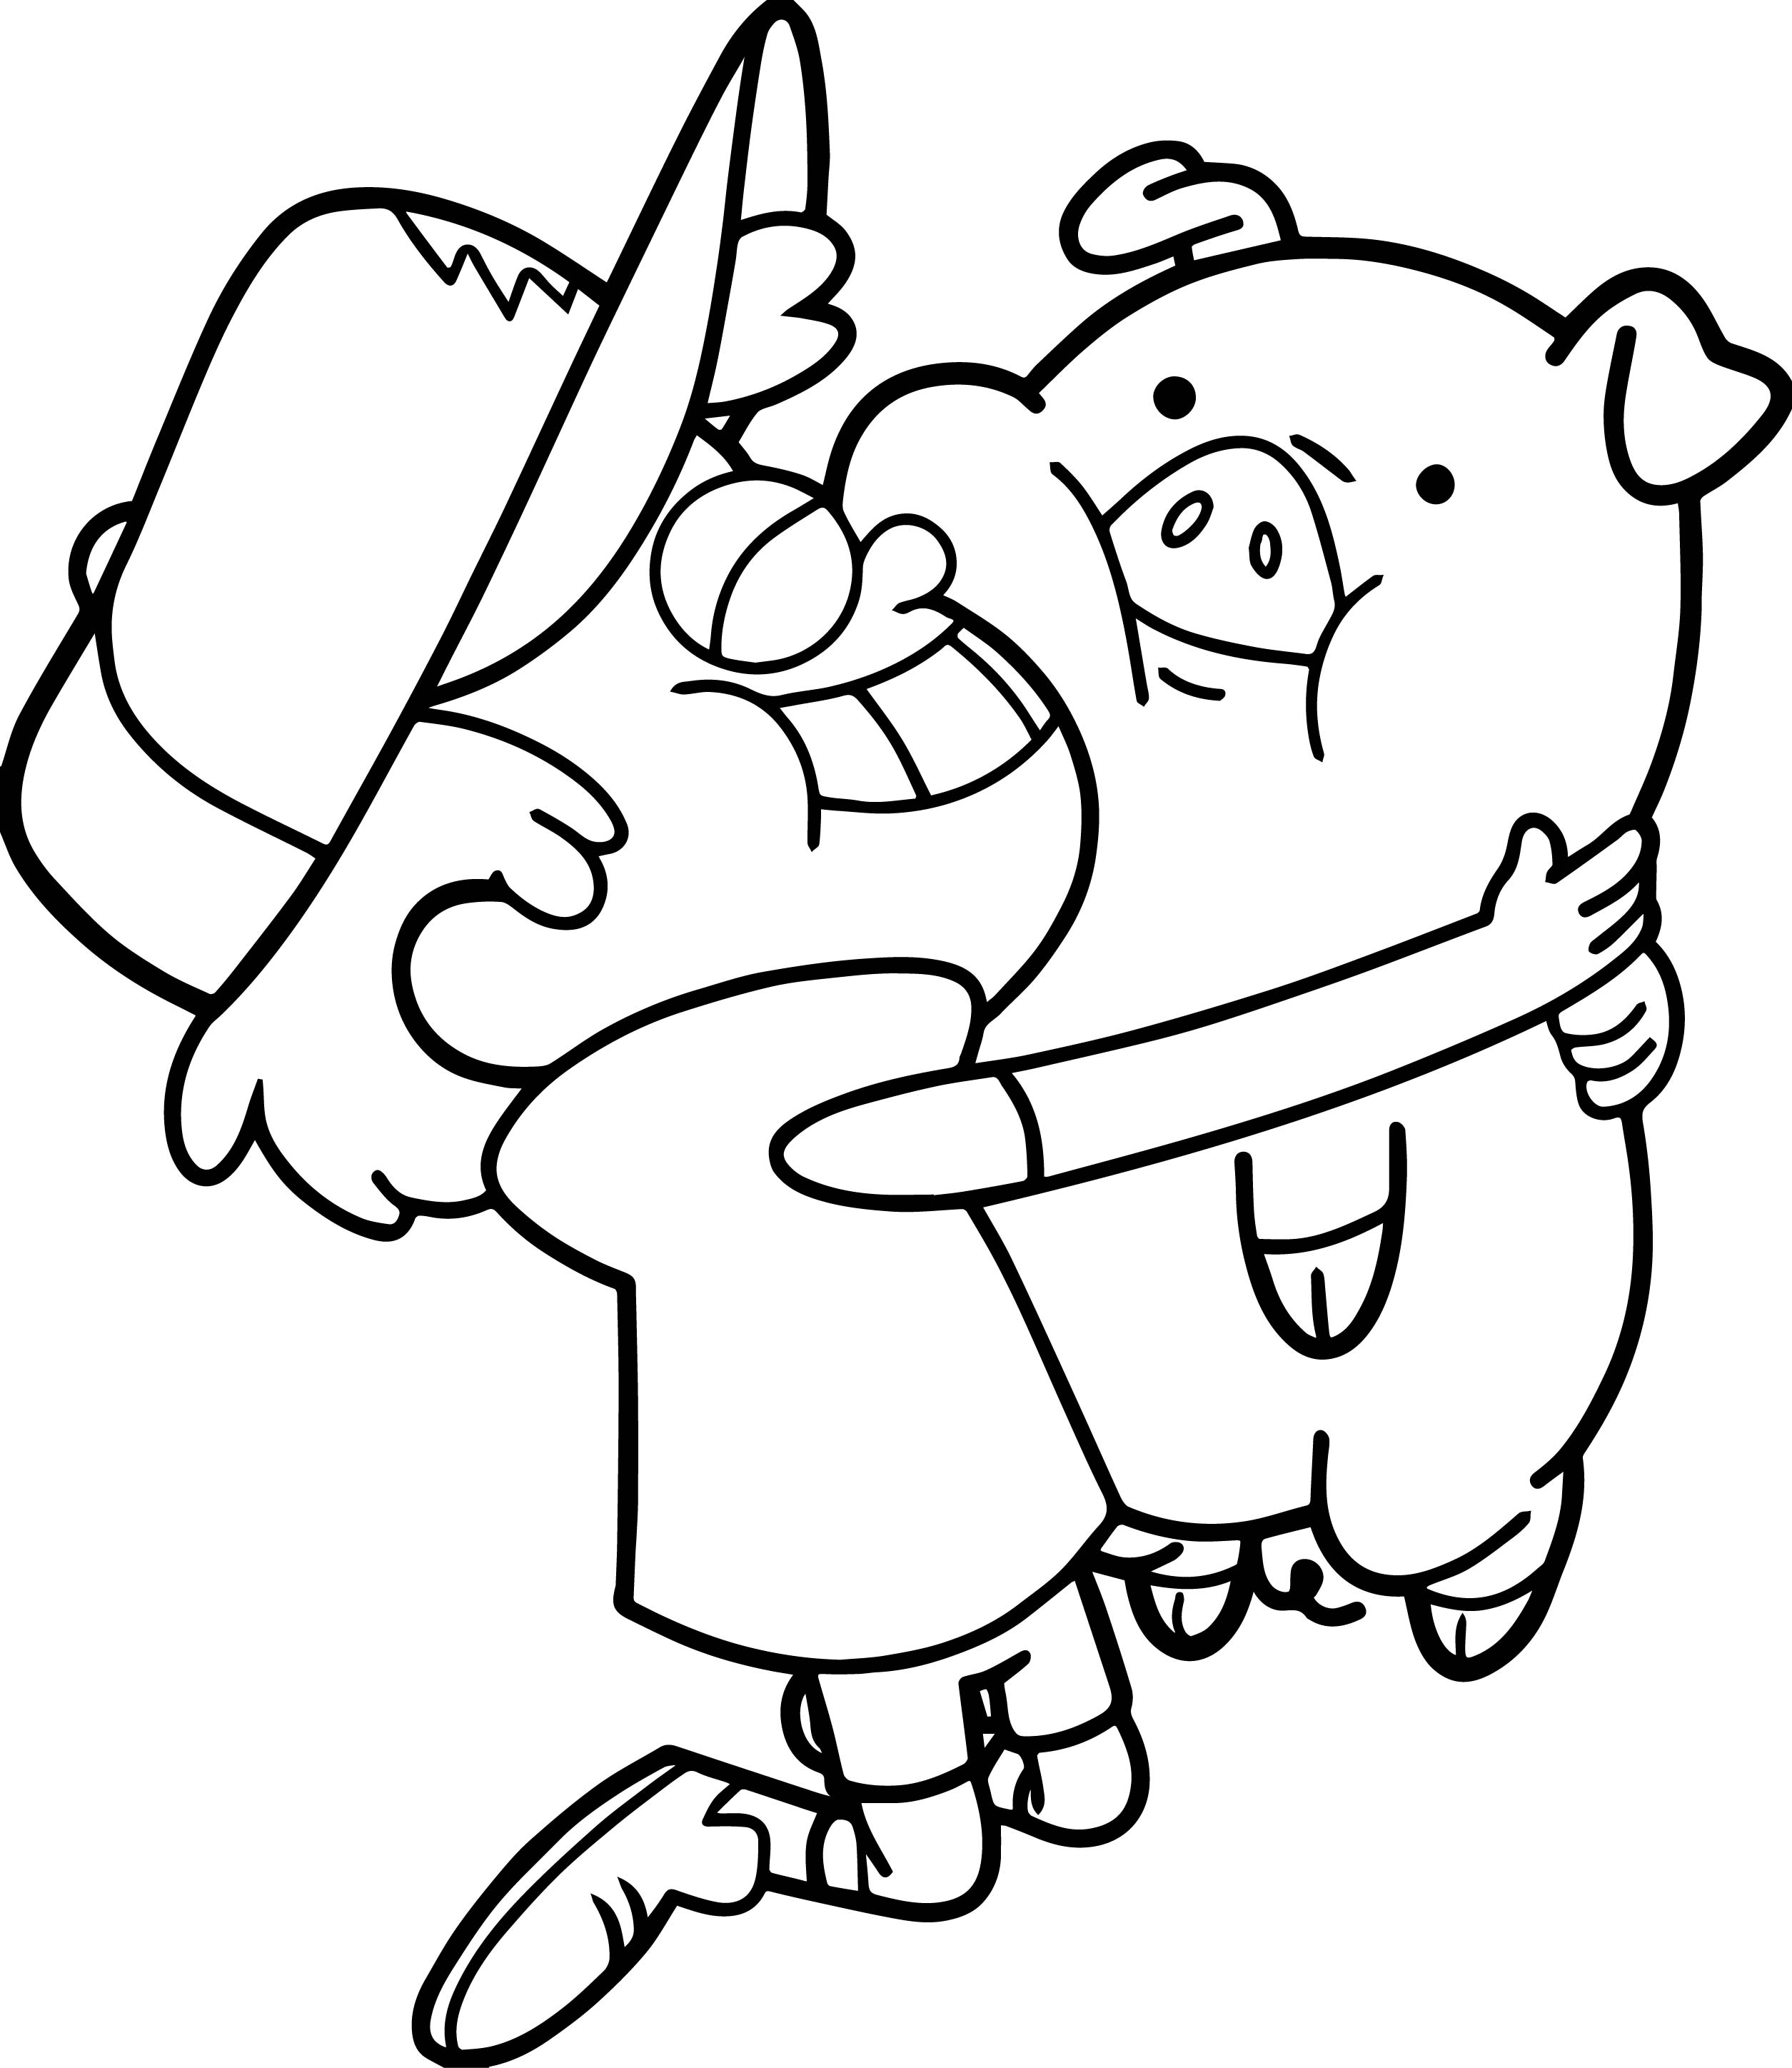 Cute Best Friend Coloring Pages At Getcolorings